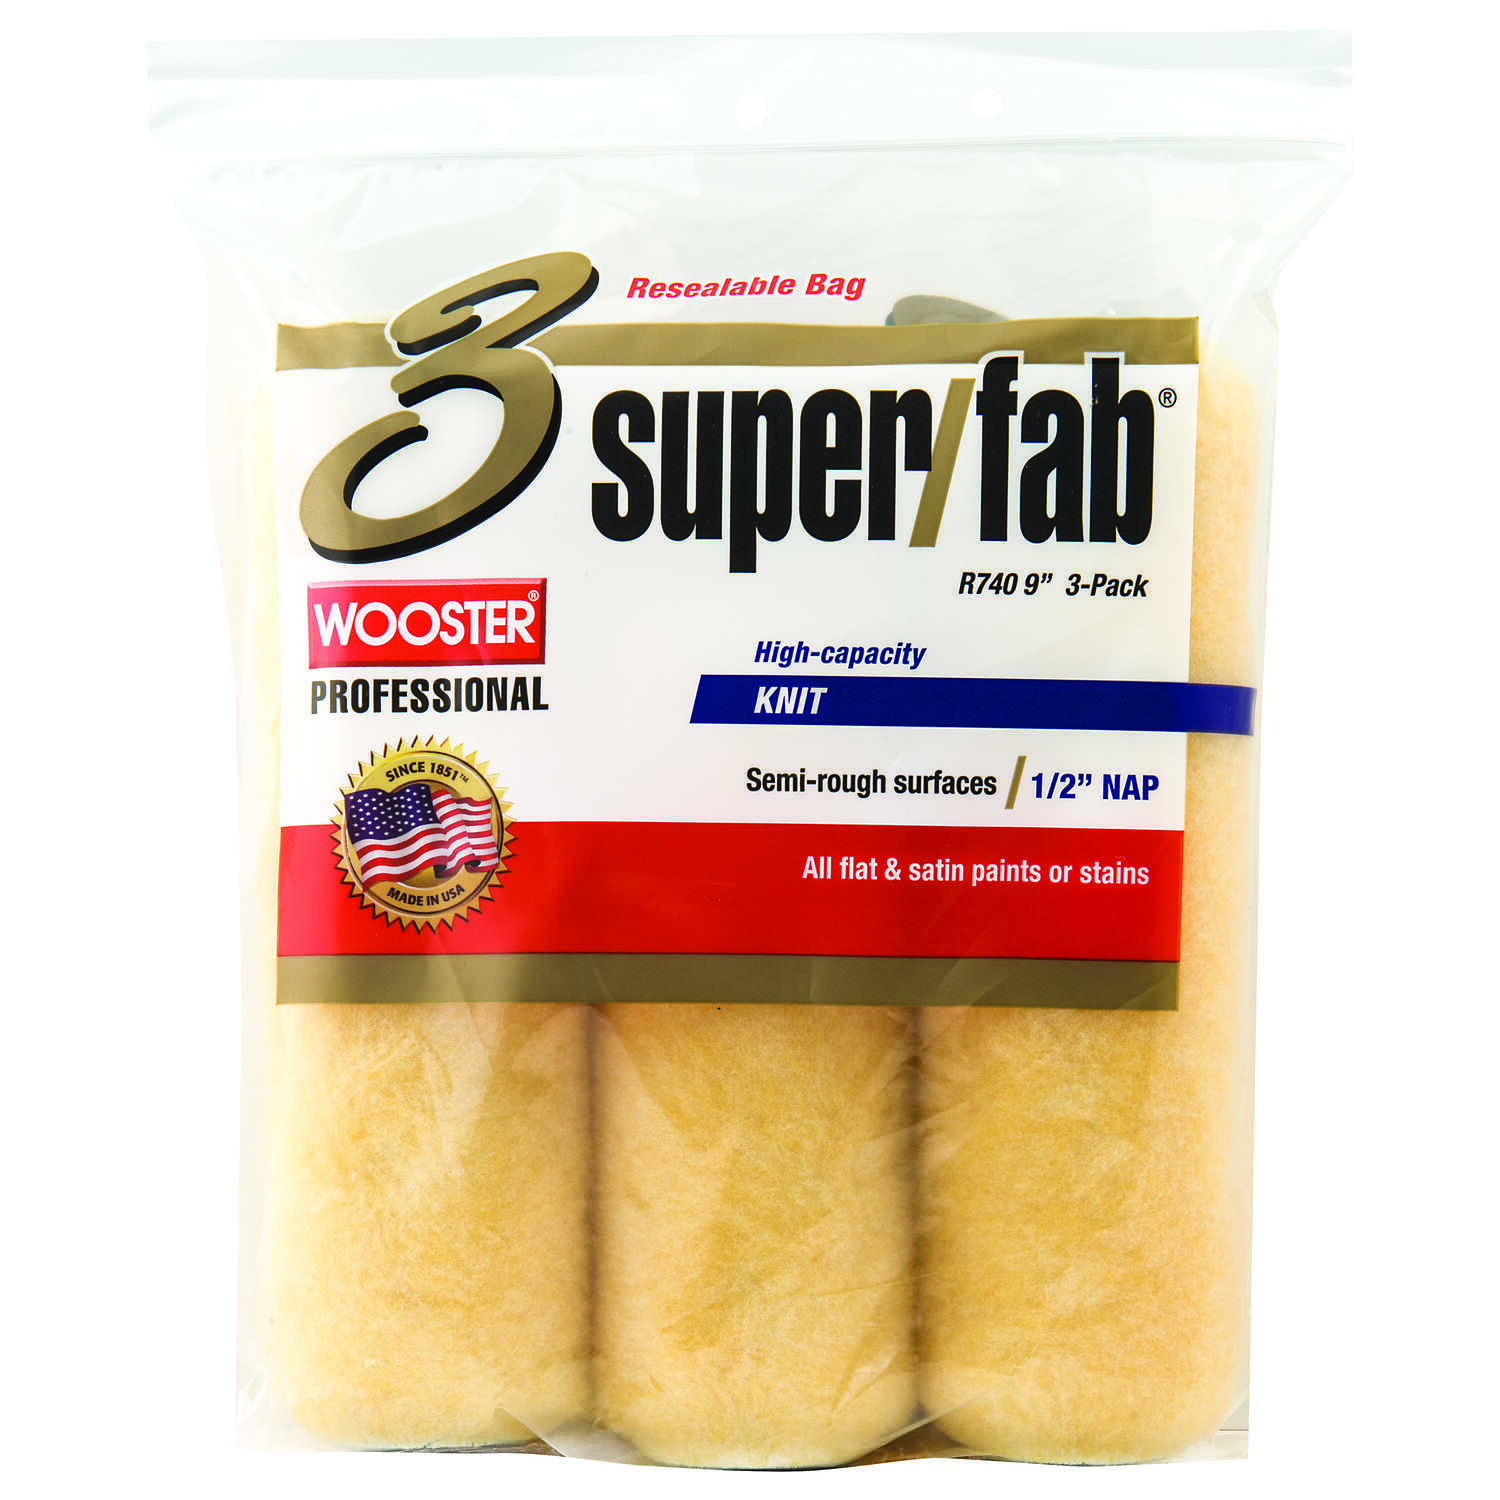 Wooster  Super/Fab  Fabric  1/2 in.  x 9 in. W Paint Roller Cover  For Semi-Smooth Surfaces 3 pk